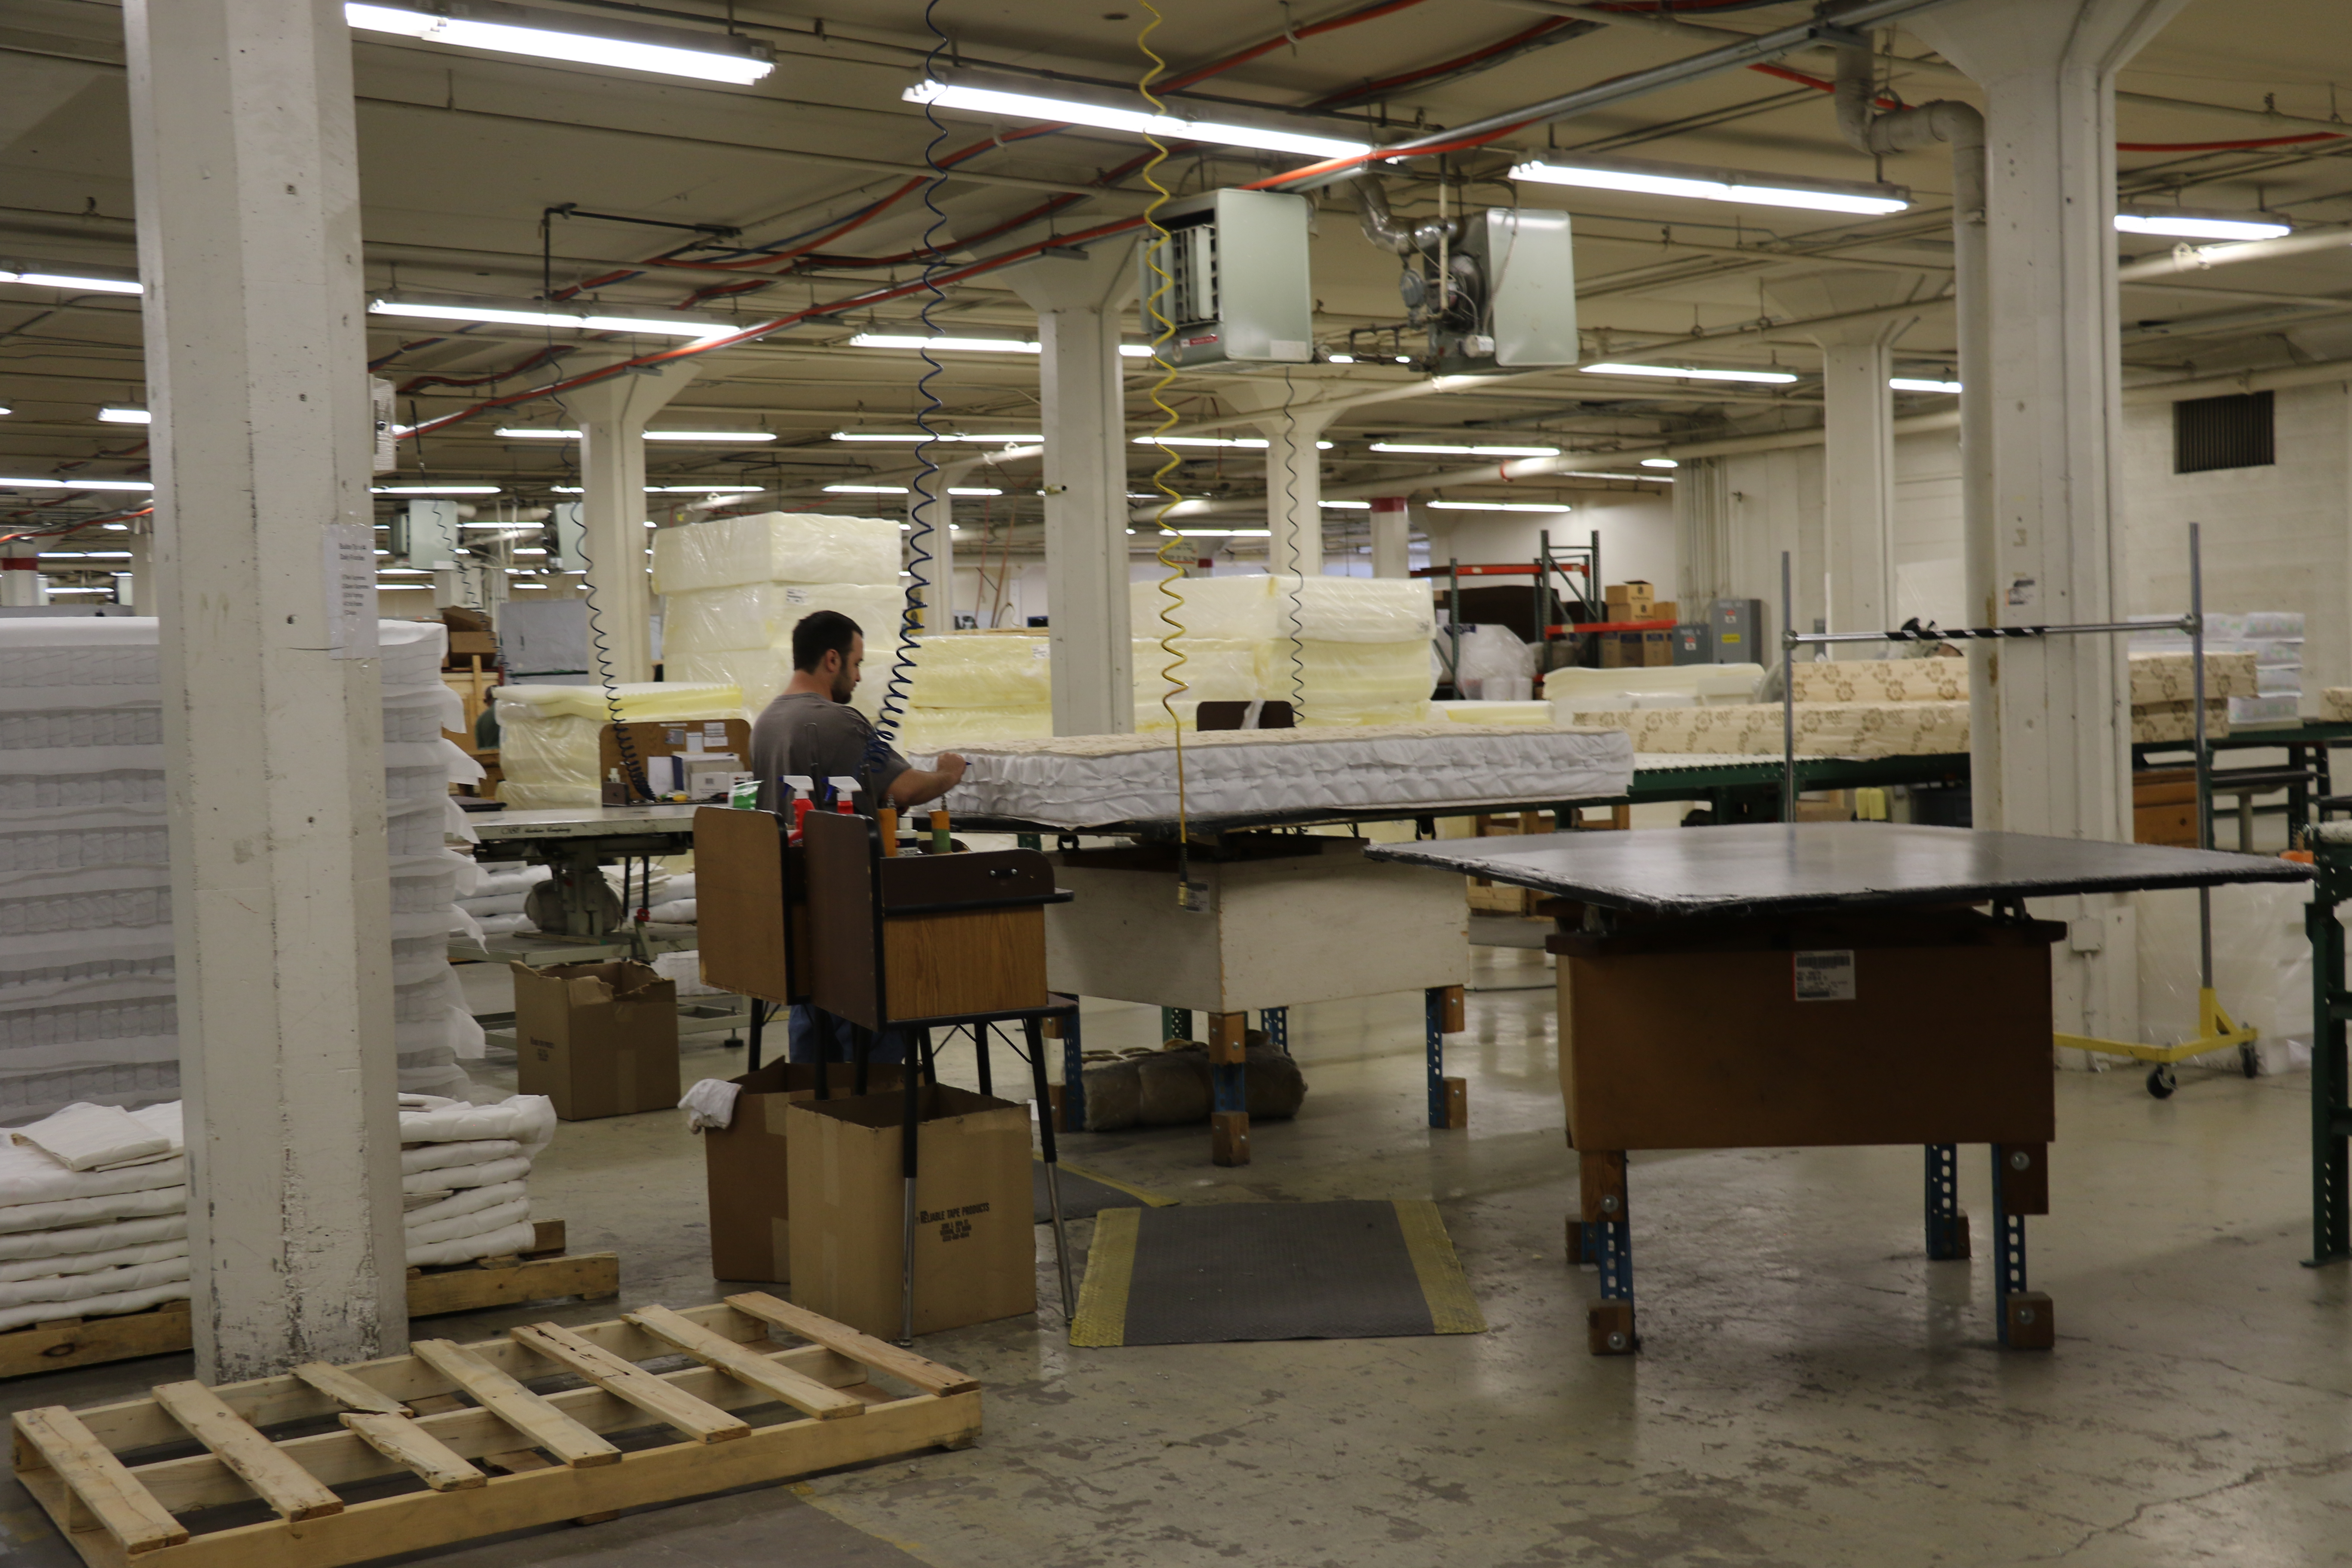 Workers put together mattresses in the Deseret Manufacturing facility in Salt Lake City, Utah.